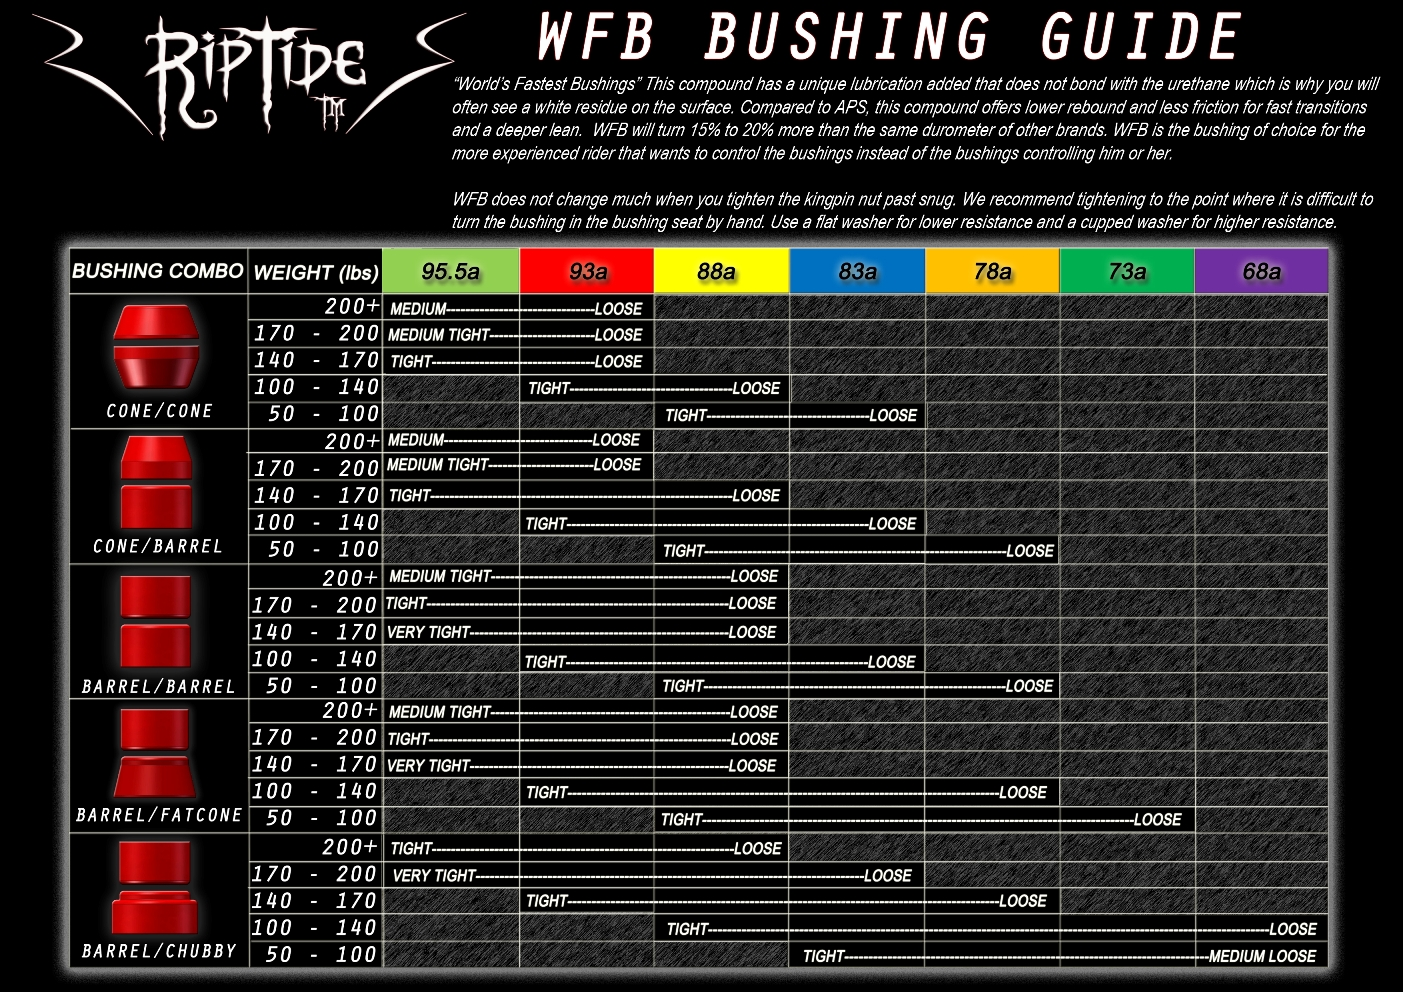 riptide-bushings-wfb-bushing-weight-chart-in-lbs-i.jpg